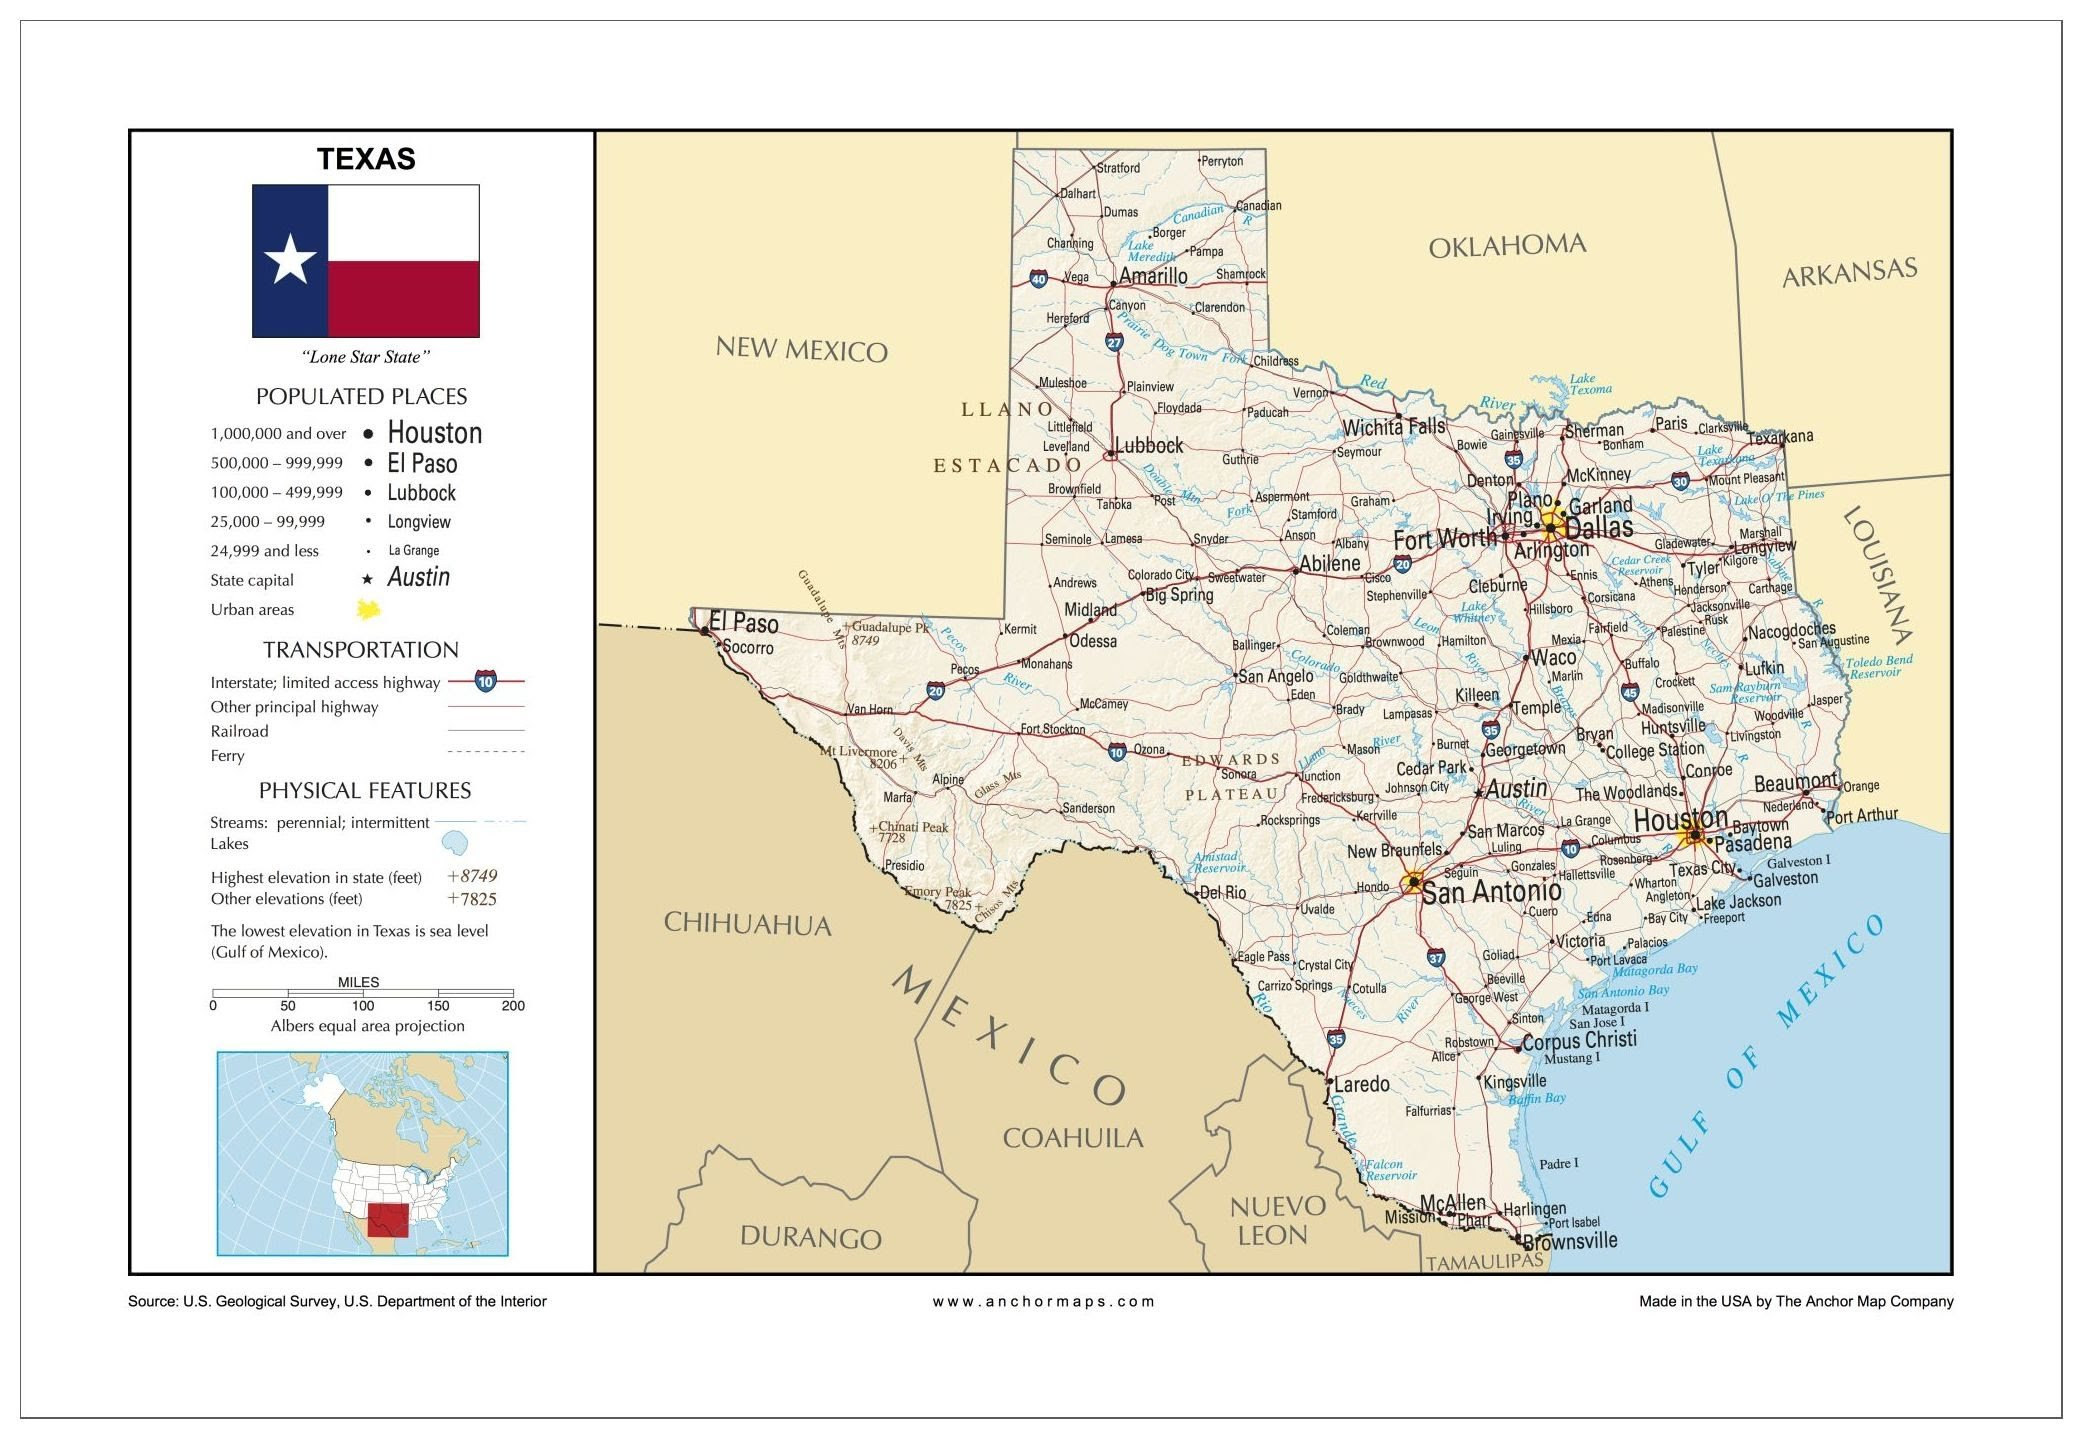 13x19 Texas General Reference Wall Map - Anchor Maps USA Foundational Series - Cities, Roads, Physical Features, and Topography [ROLLED] by Anchor Maps